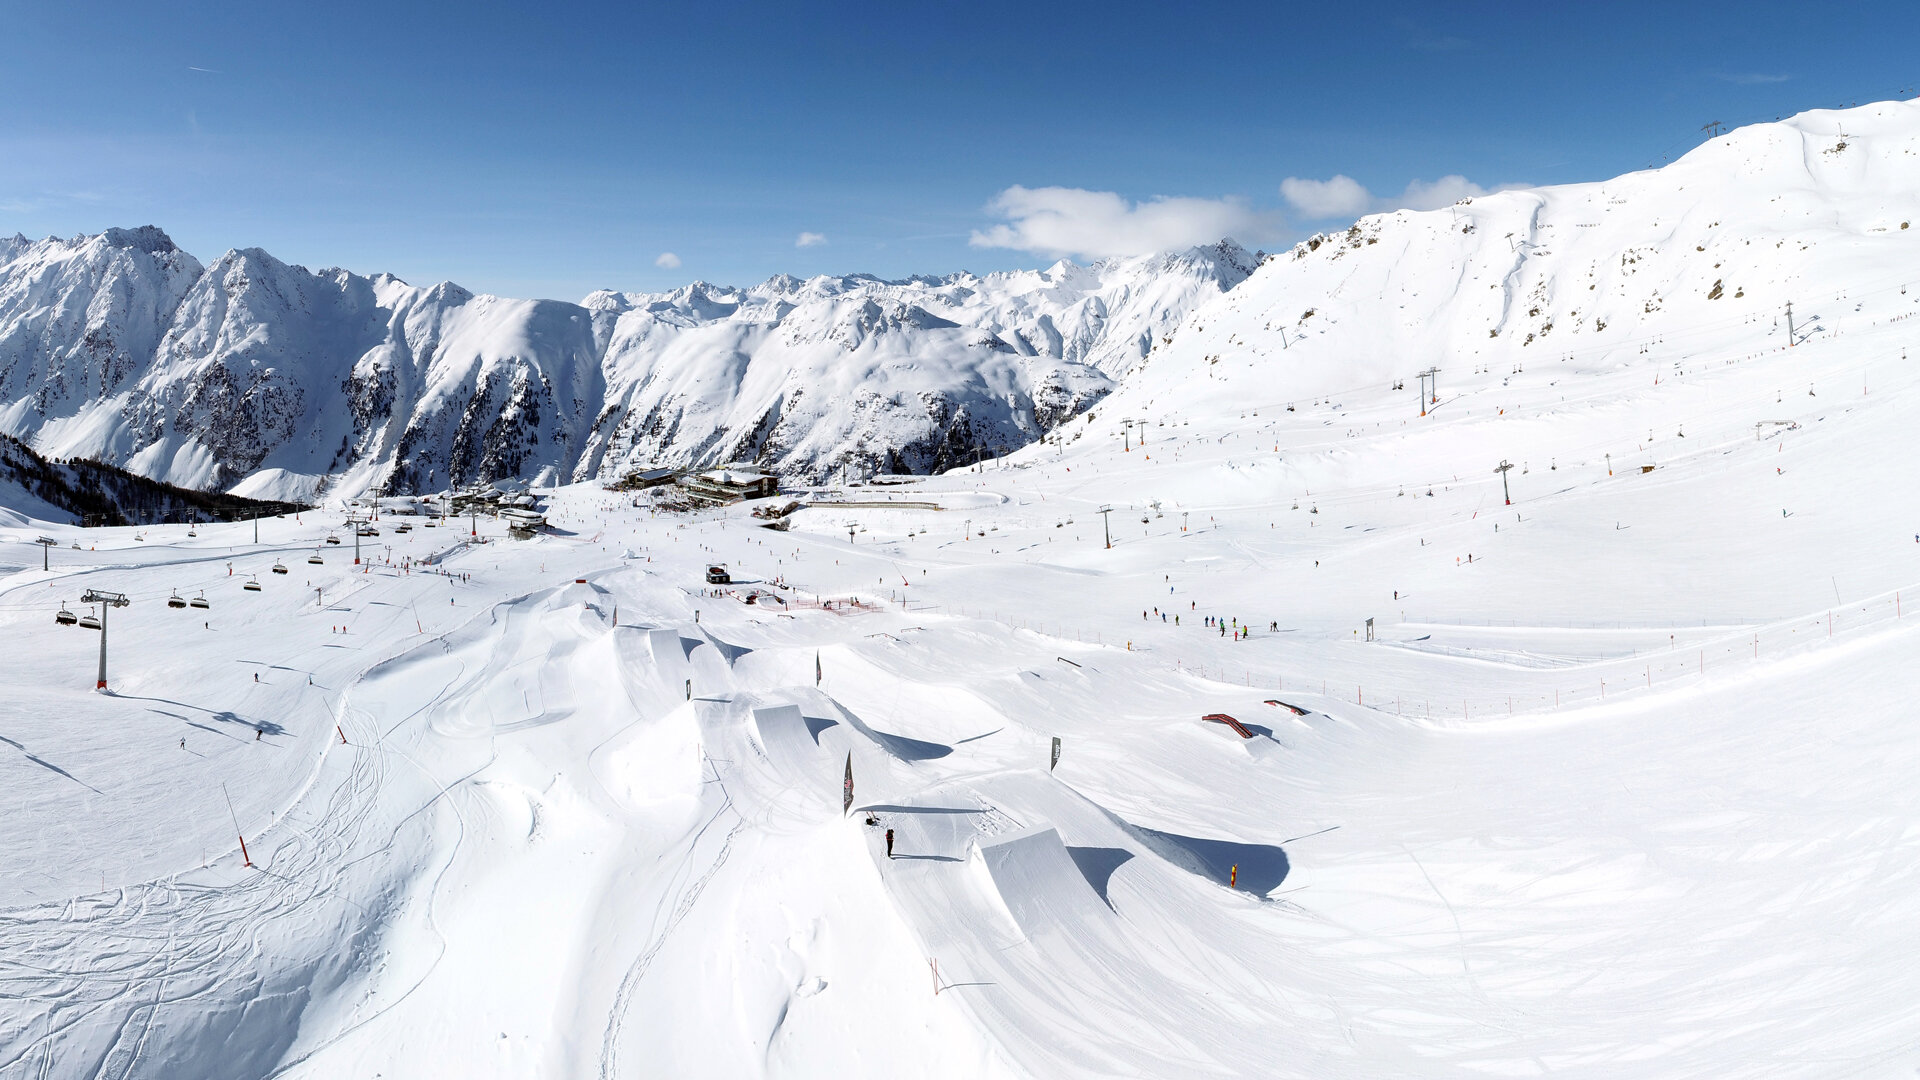 Ischgl's Snowpark Area 2 on a wonderful winter day in Ischgl